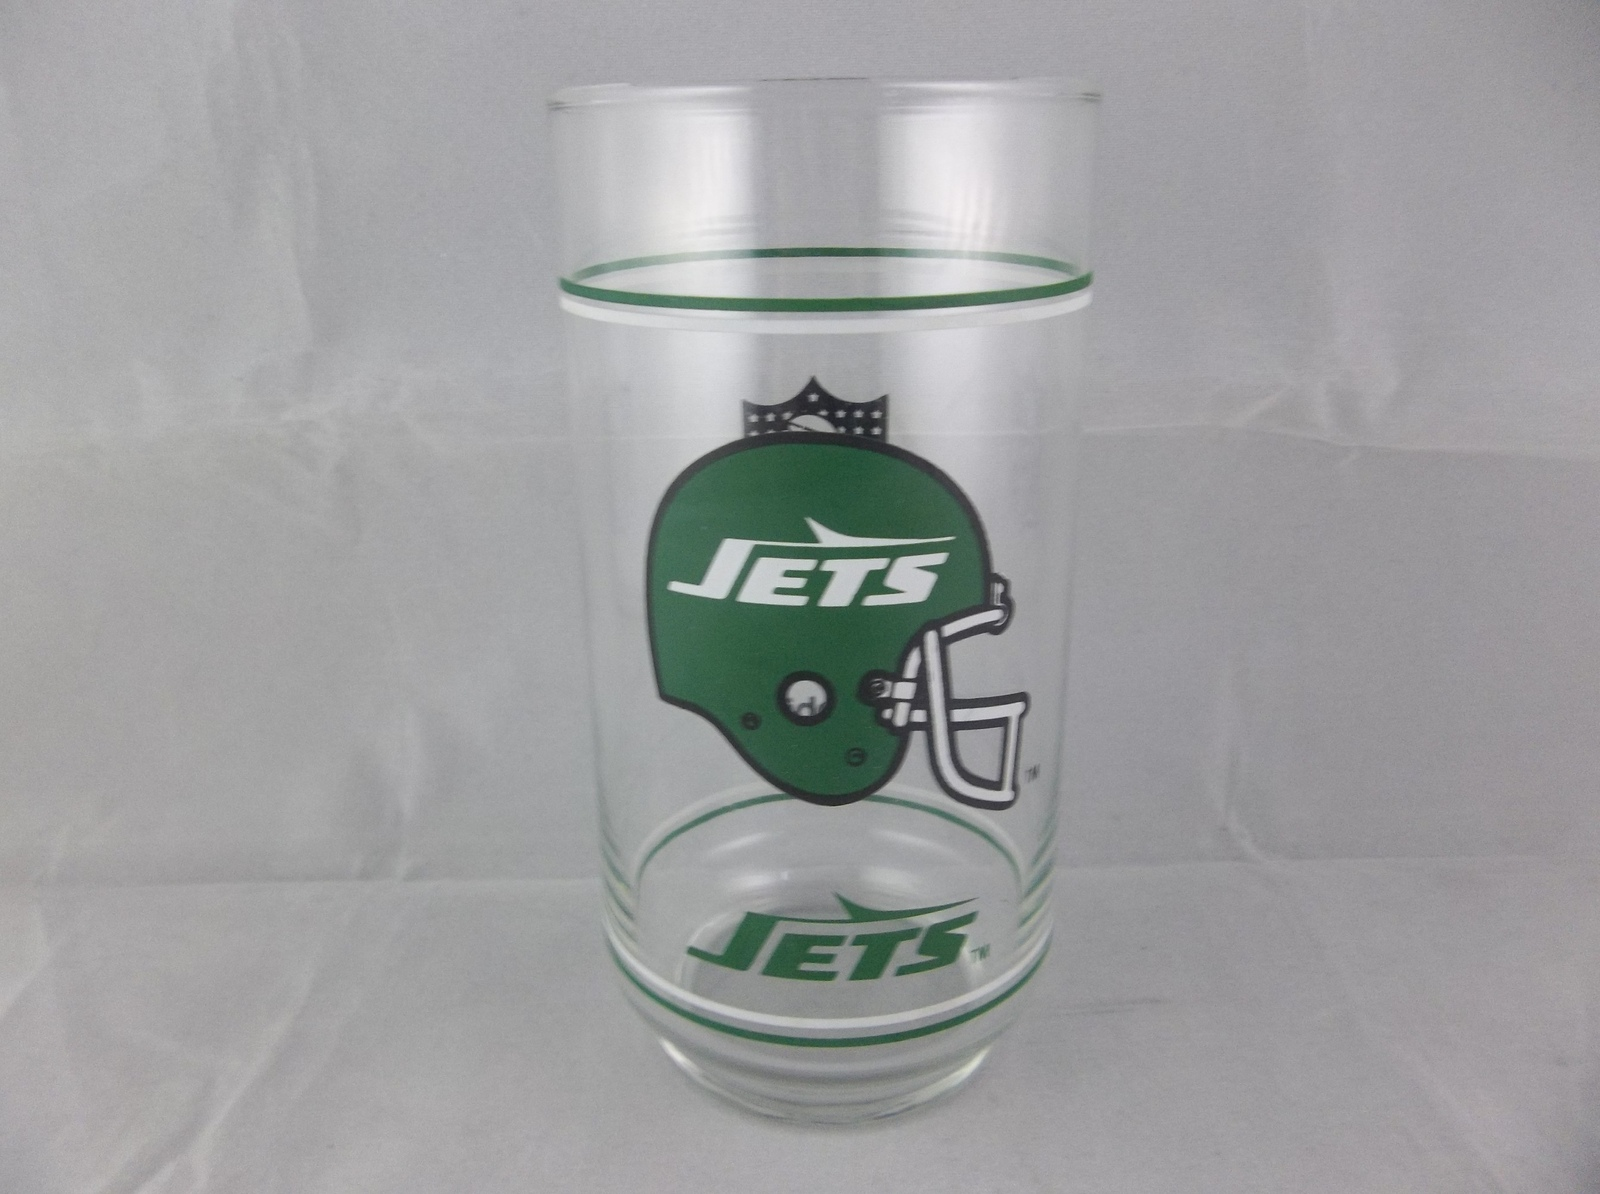 New York NY Jets Vintage 1980's Mobil Oil Gas Station Promotional Souvenir Glass - $6.00